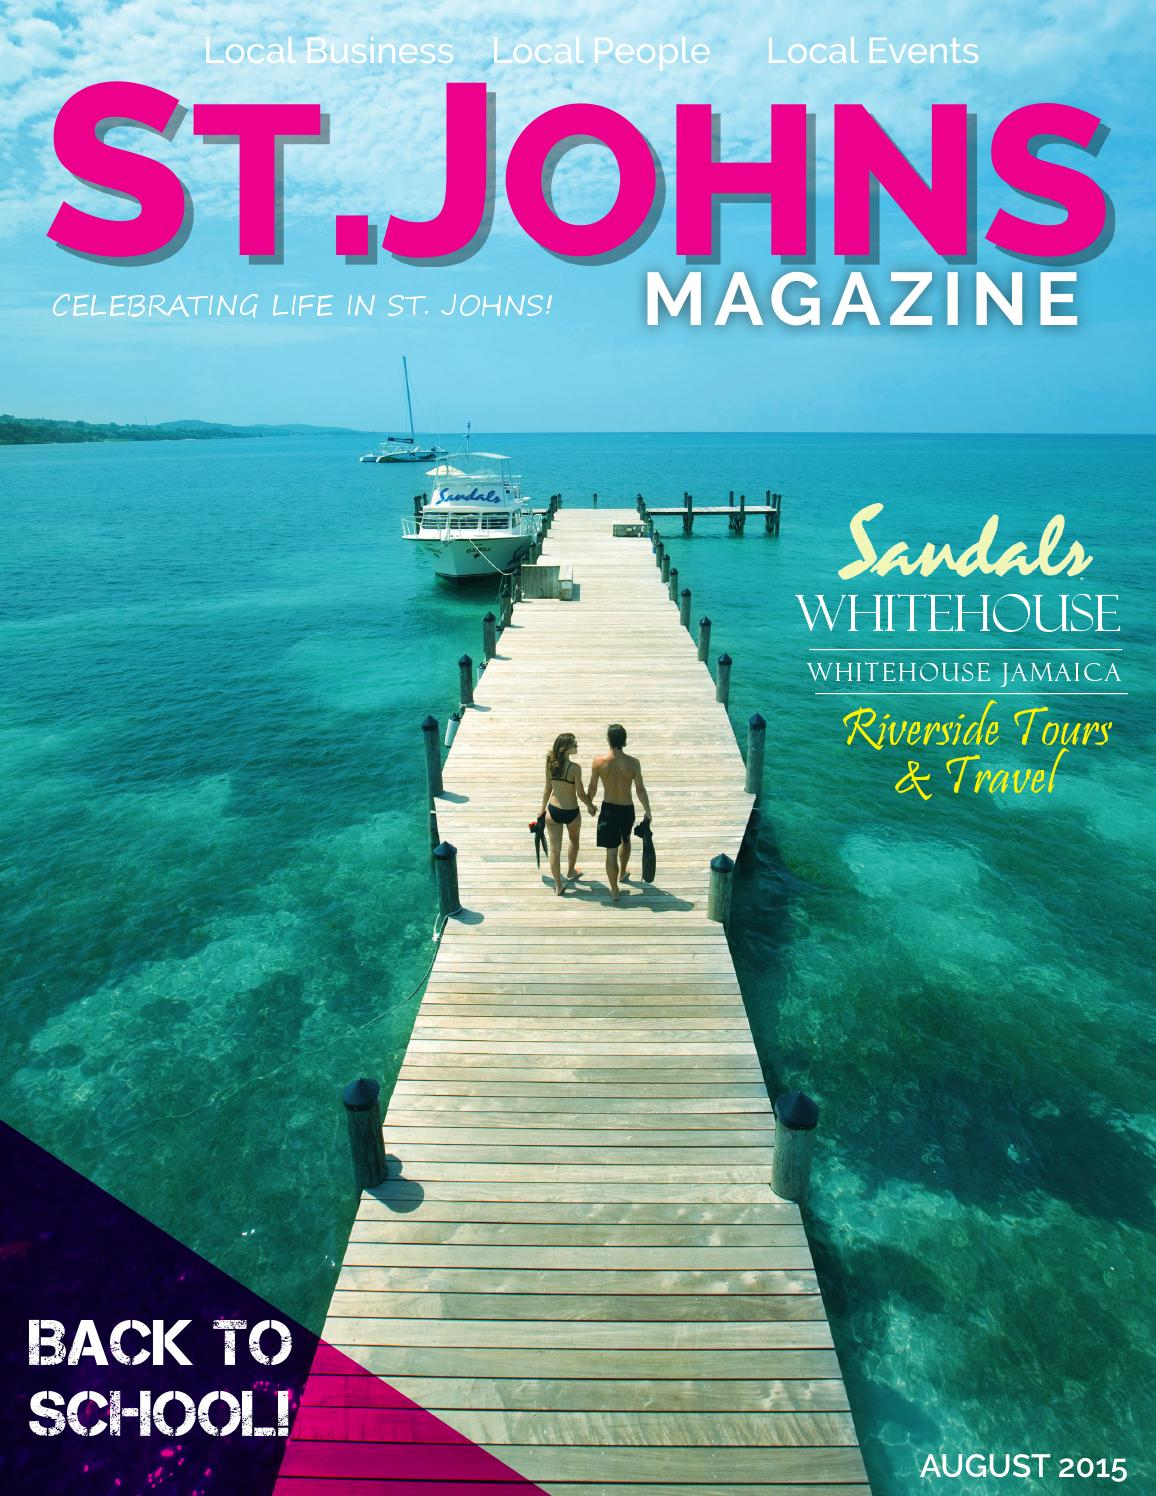 St Johns Mag August 2015 By St. Johns Magazine